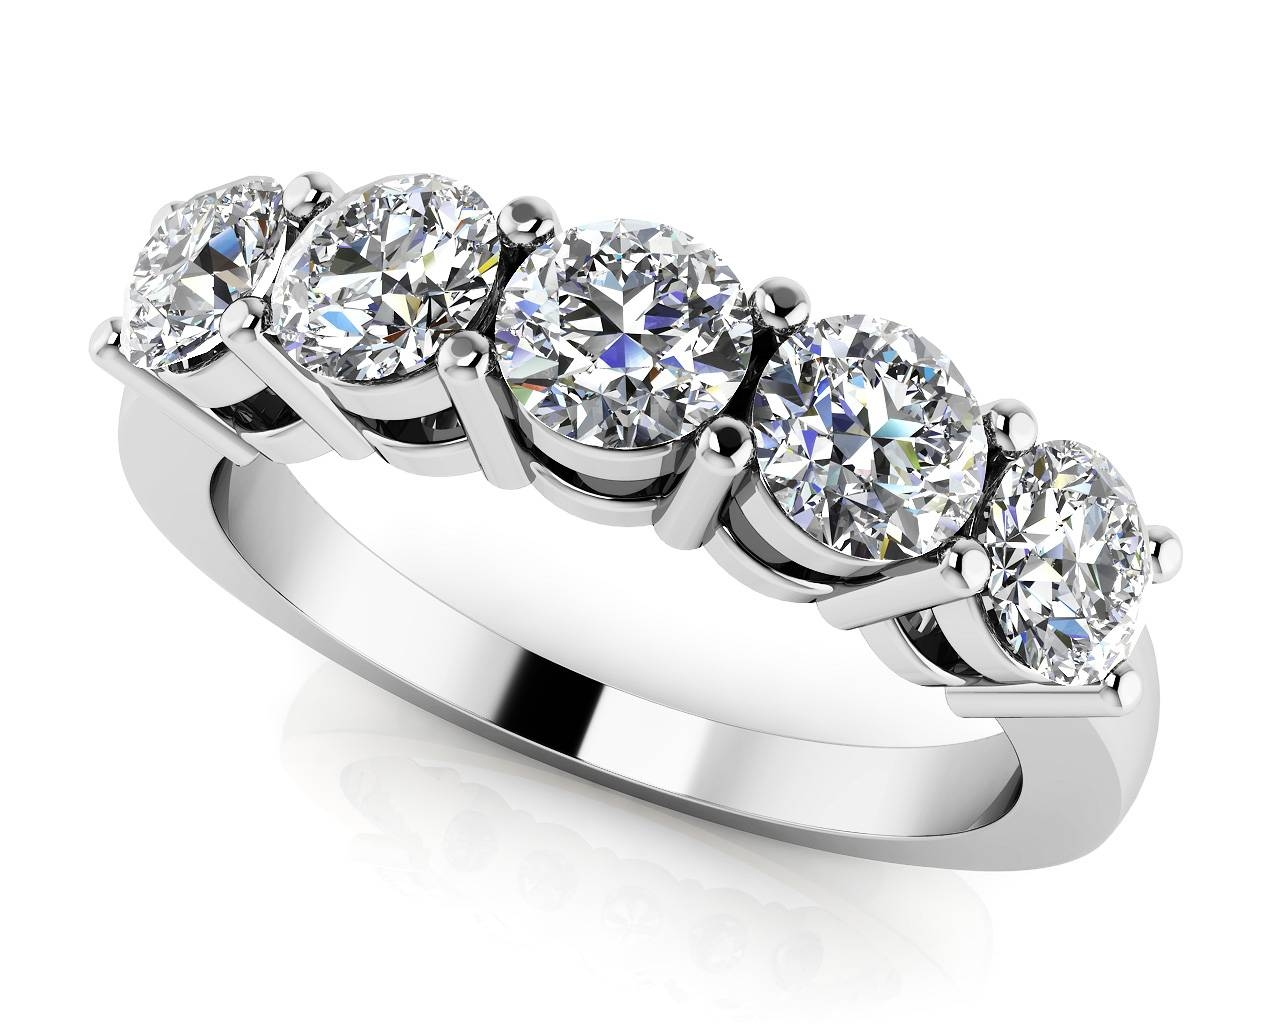 Design Your Own Diamond Anniversary Ring & Eternity Ring Throughout Latest 5 Stone Anniversary Rings (Gallery 7 of 25)